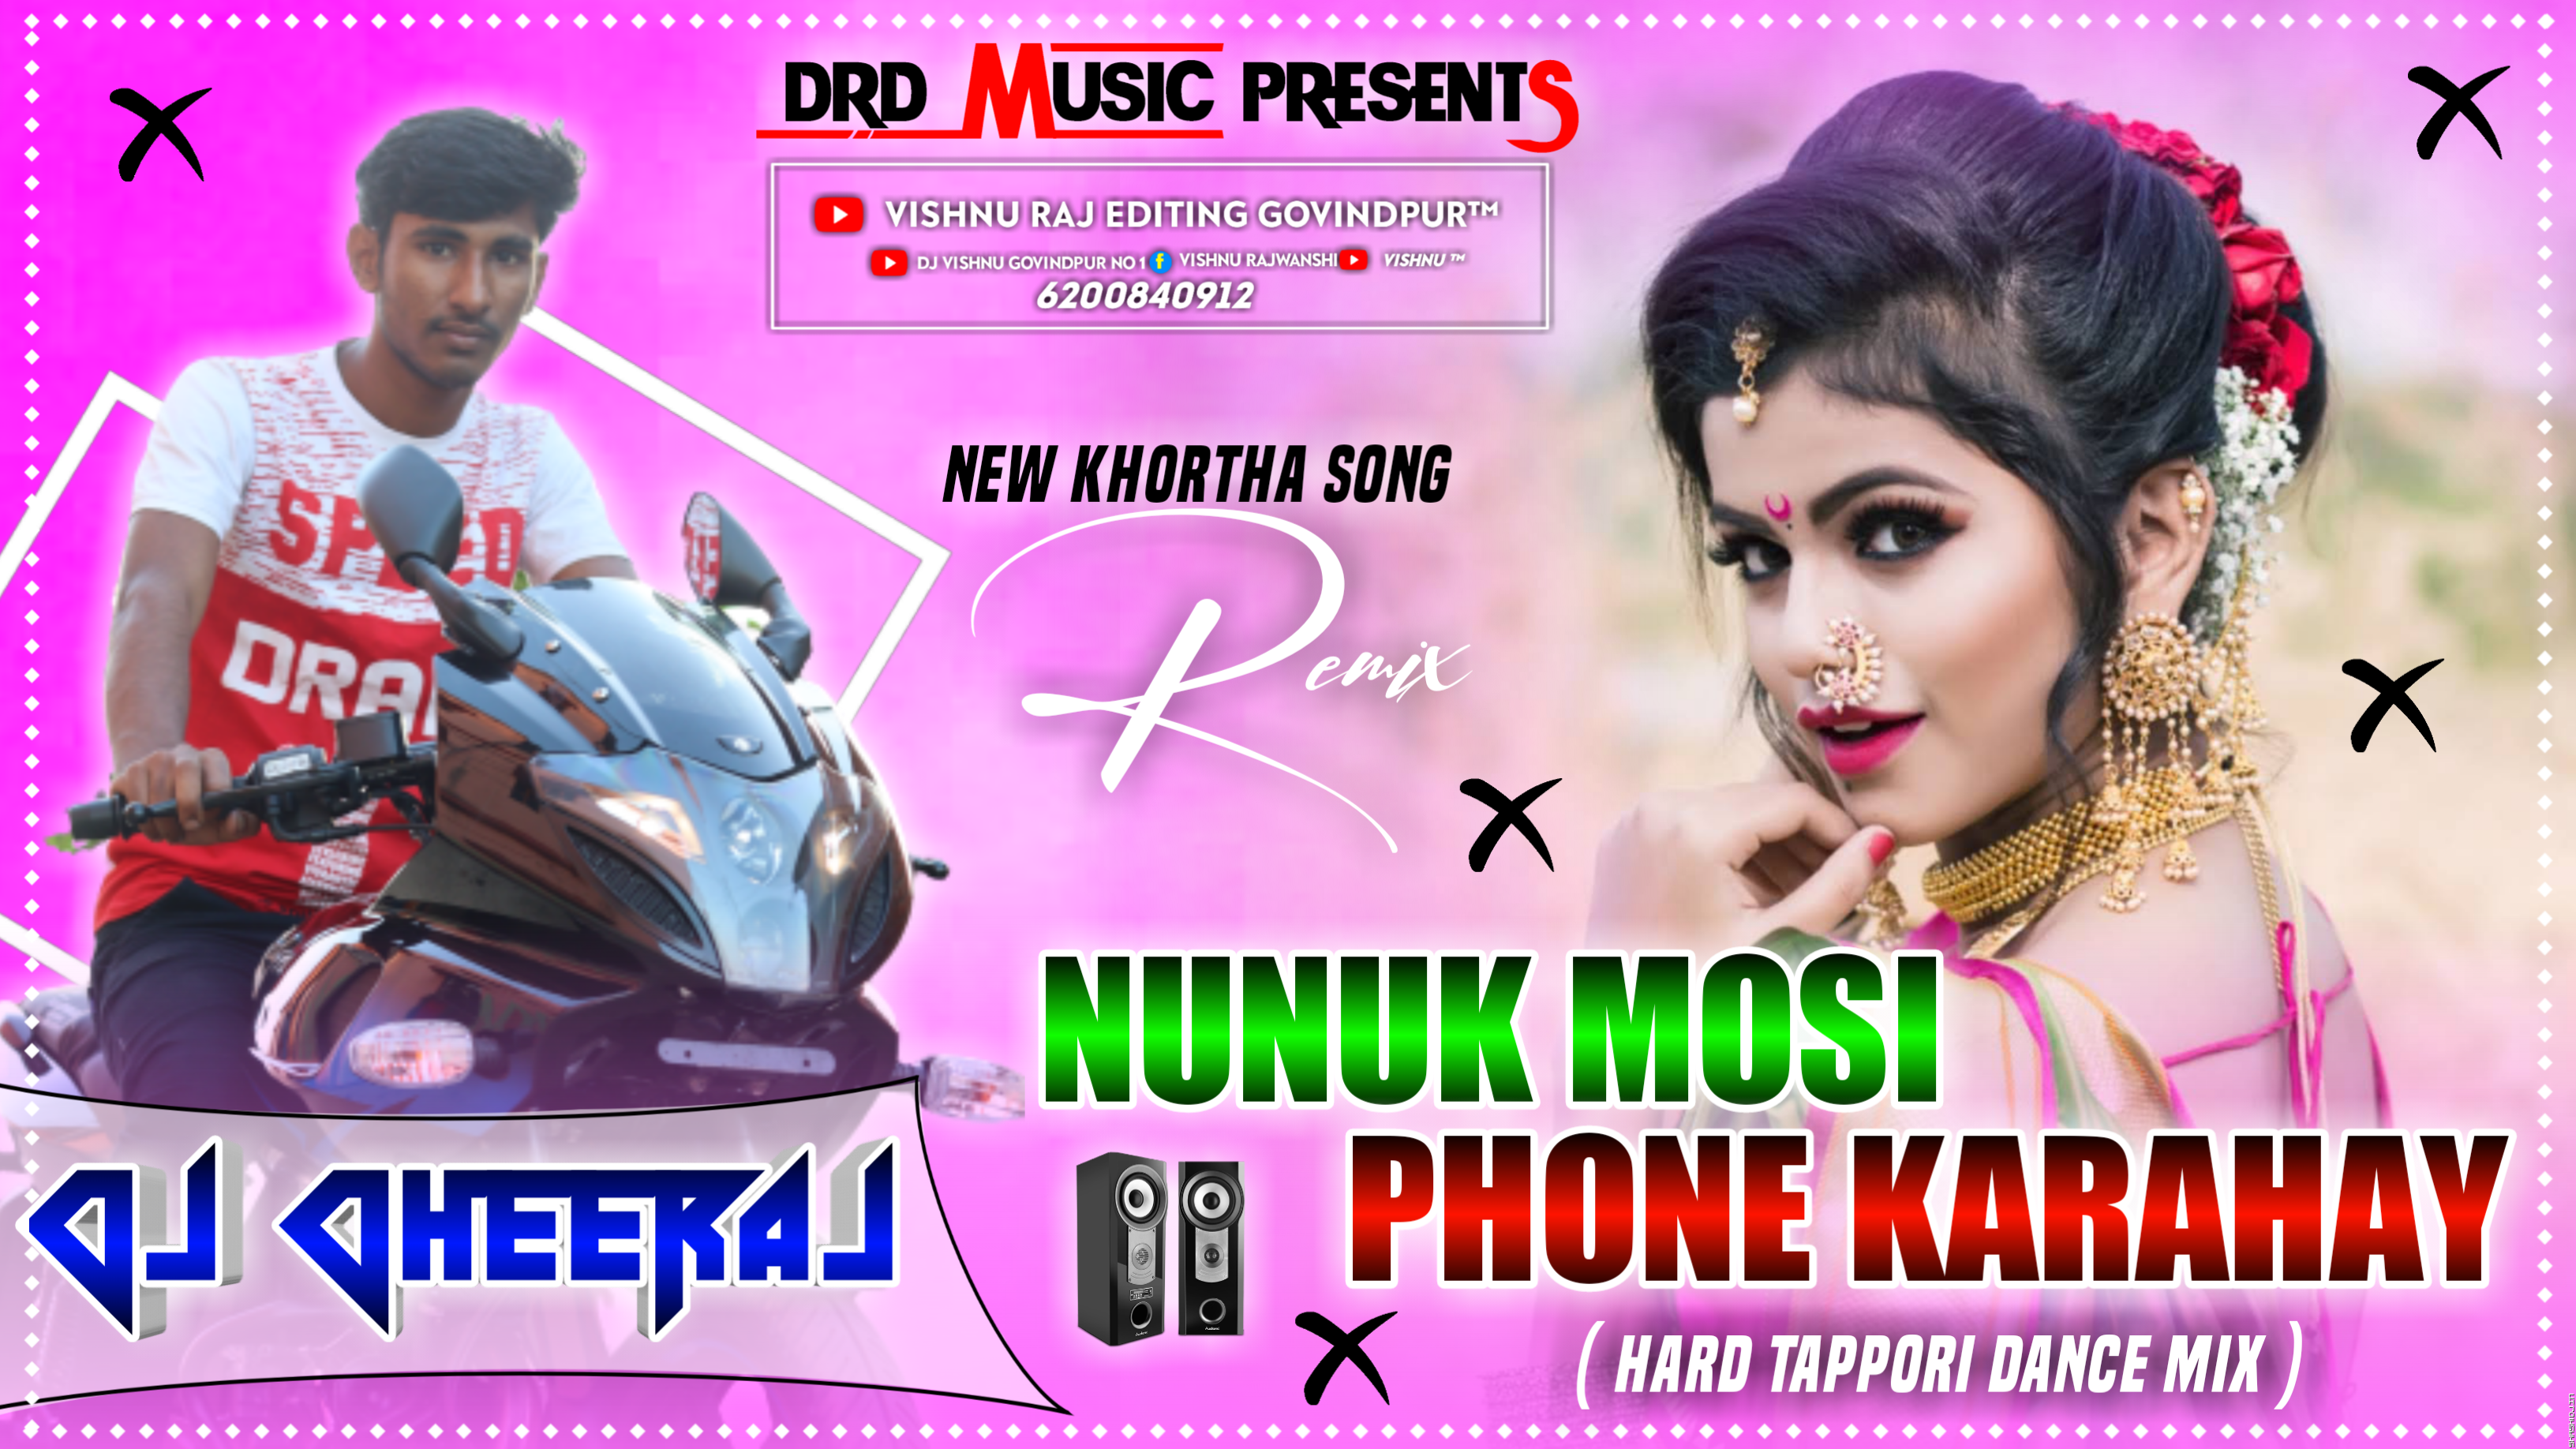 Nunuk Mosi Phone Karahay ( Hard Tappori Dance Mix ) Dj Dheeraj Dhanbad.mp3